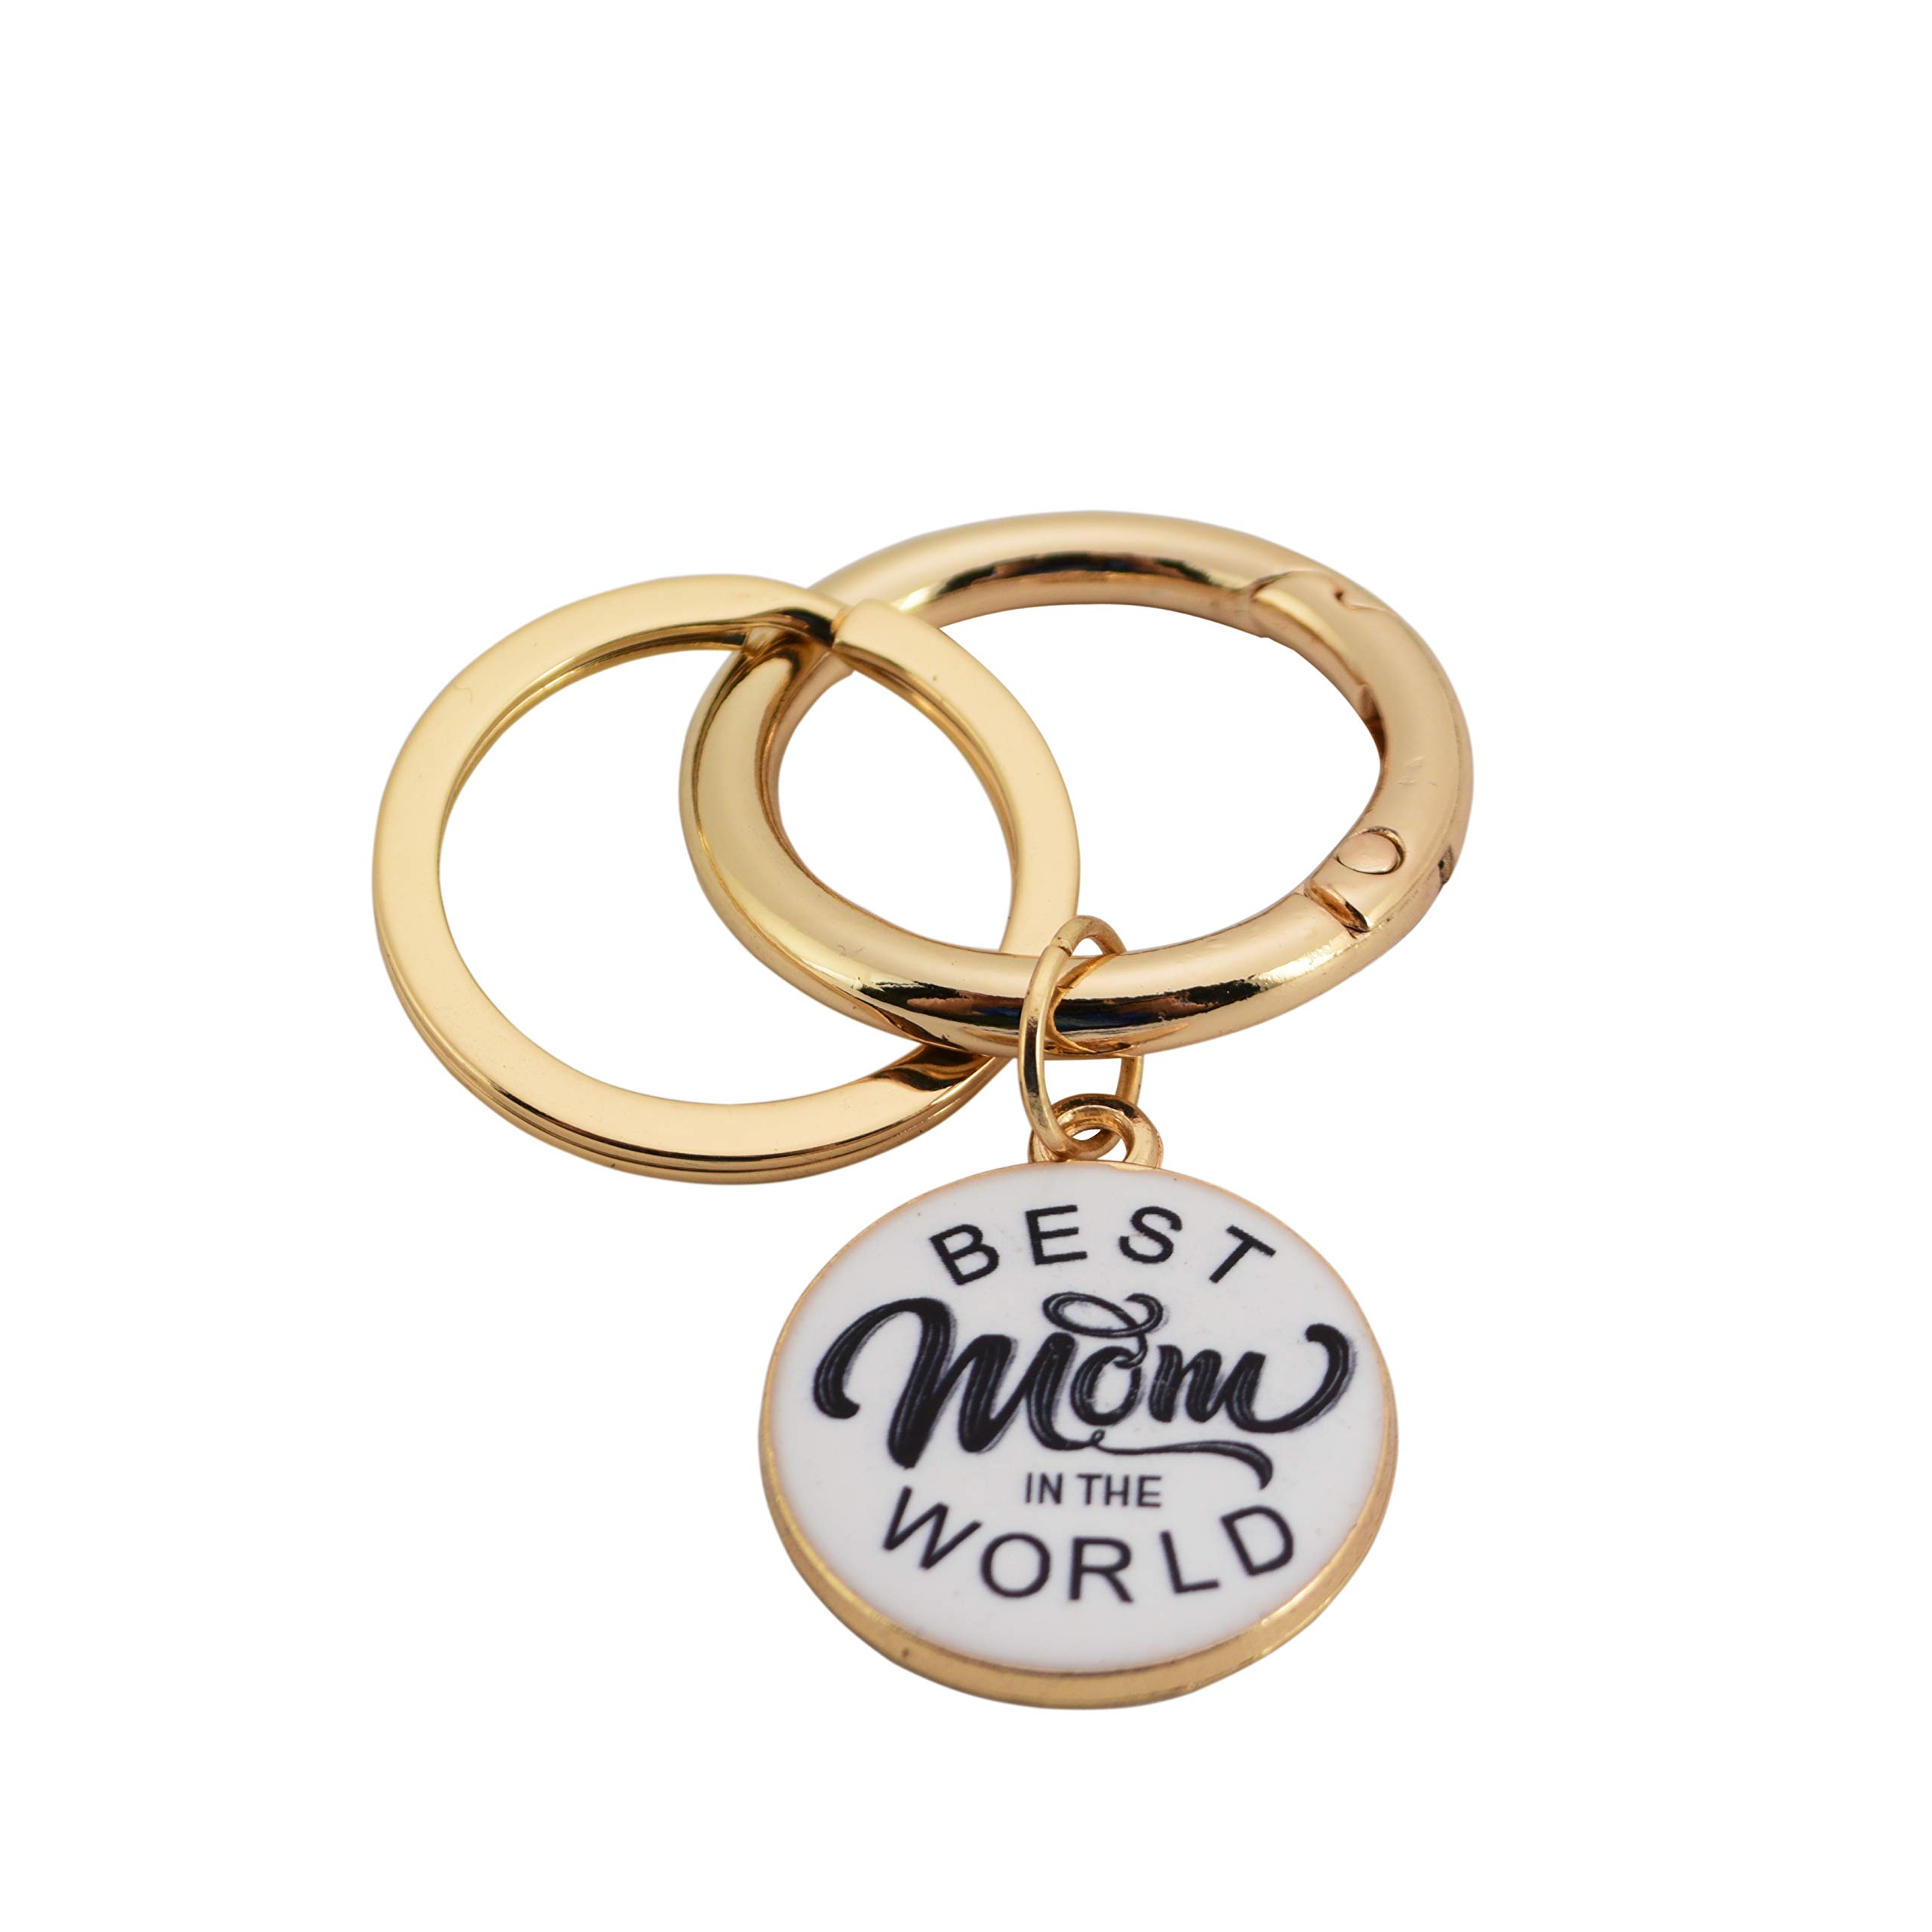 Coolcos Keychain Nana Personalize Best Mom keyring New Mother Gift New Born Baby key Chain Gifts for Mimi, Grandma, Memaw